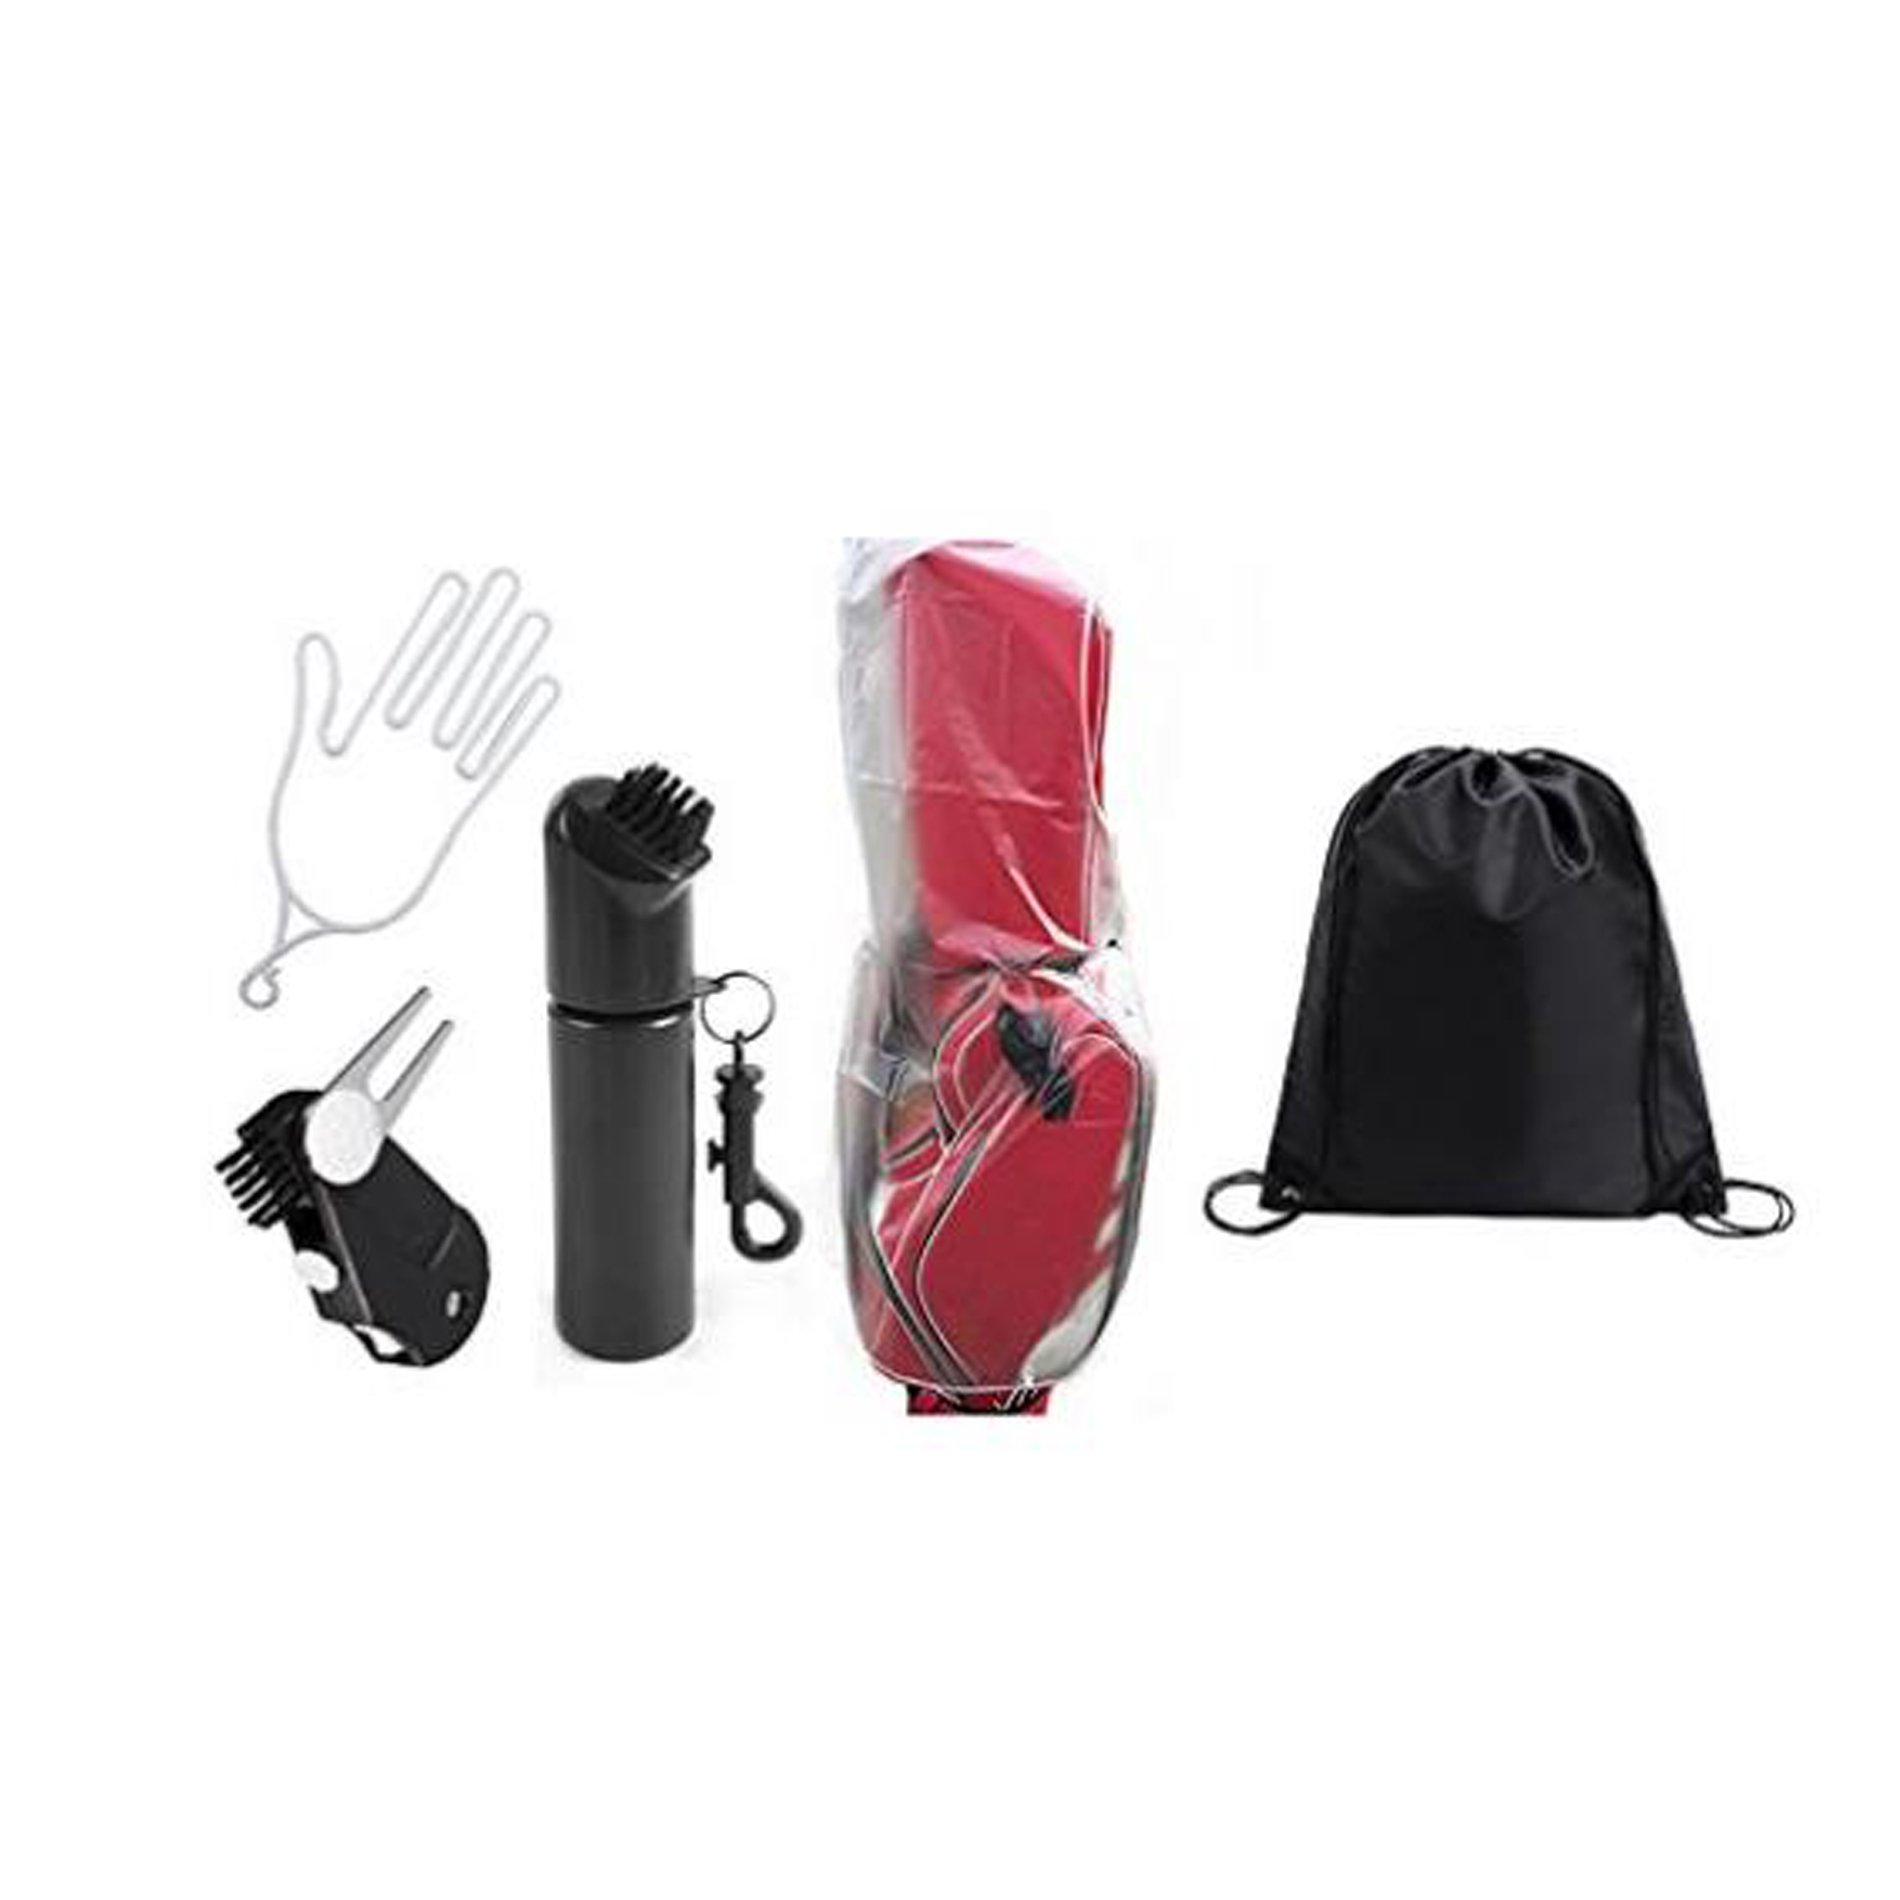 IDS Home POSMA Rain Cover Golf Bag Bundle Set with Golf Divot Repair, Wet Scrub Cleaning Brush by IDS Home (Image #1)